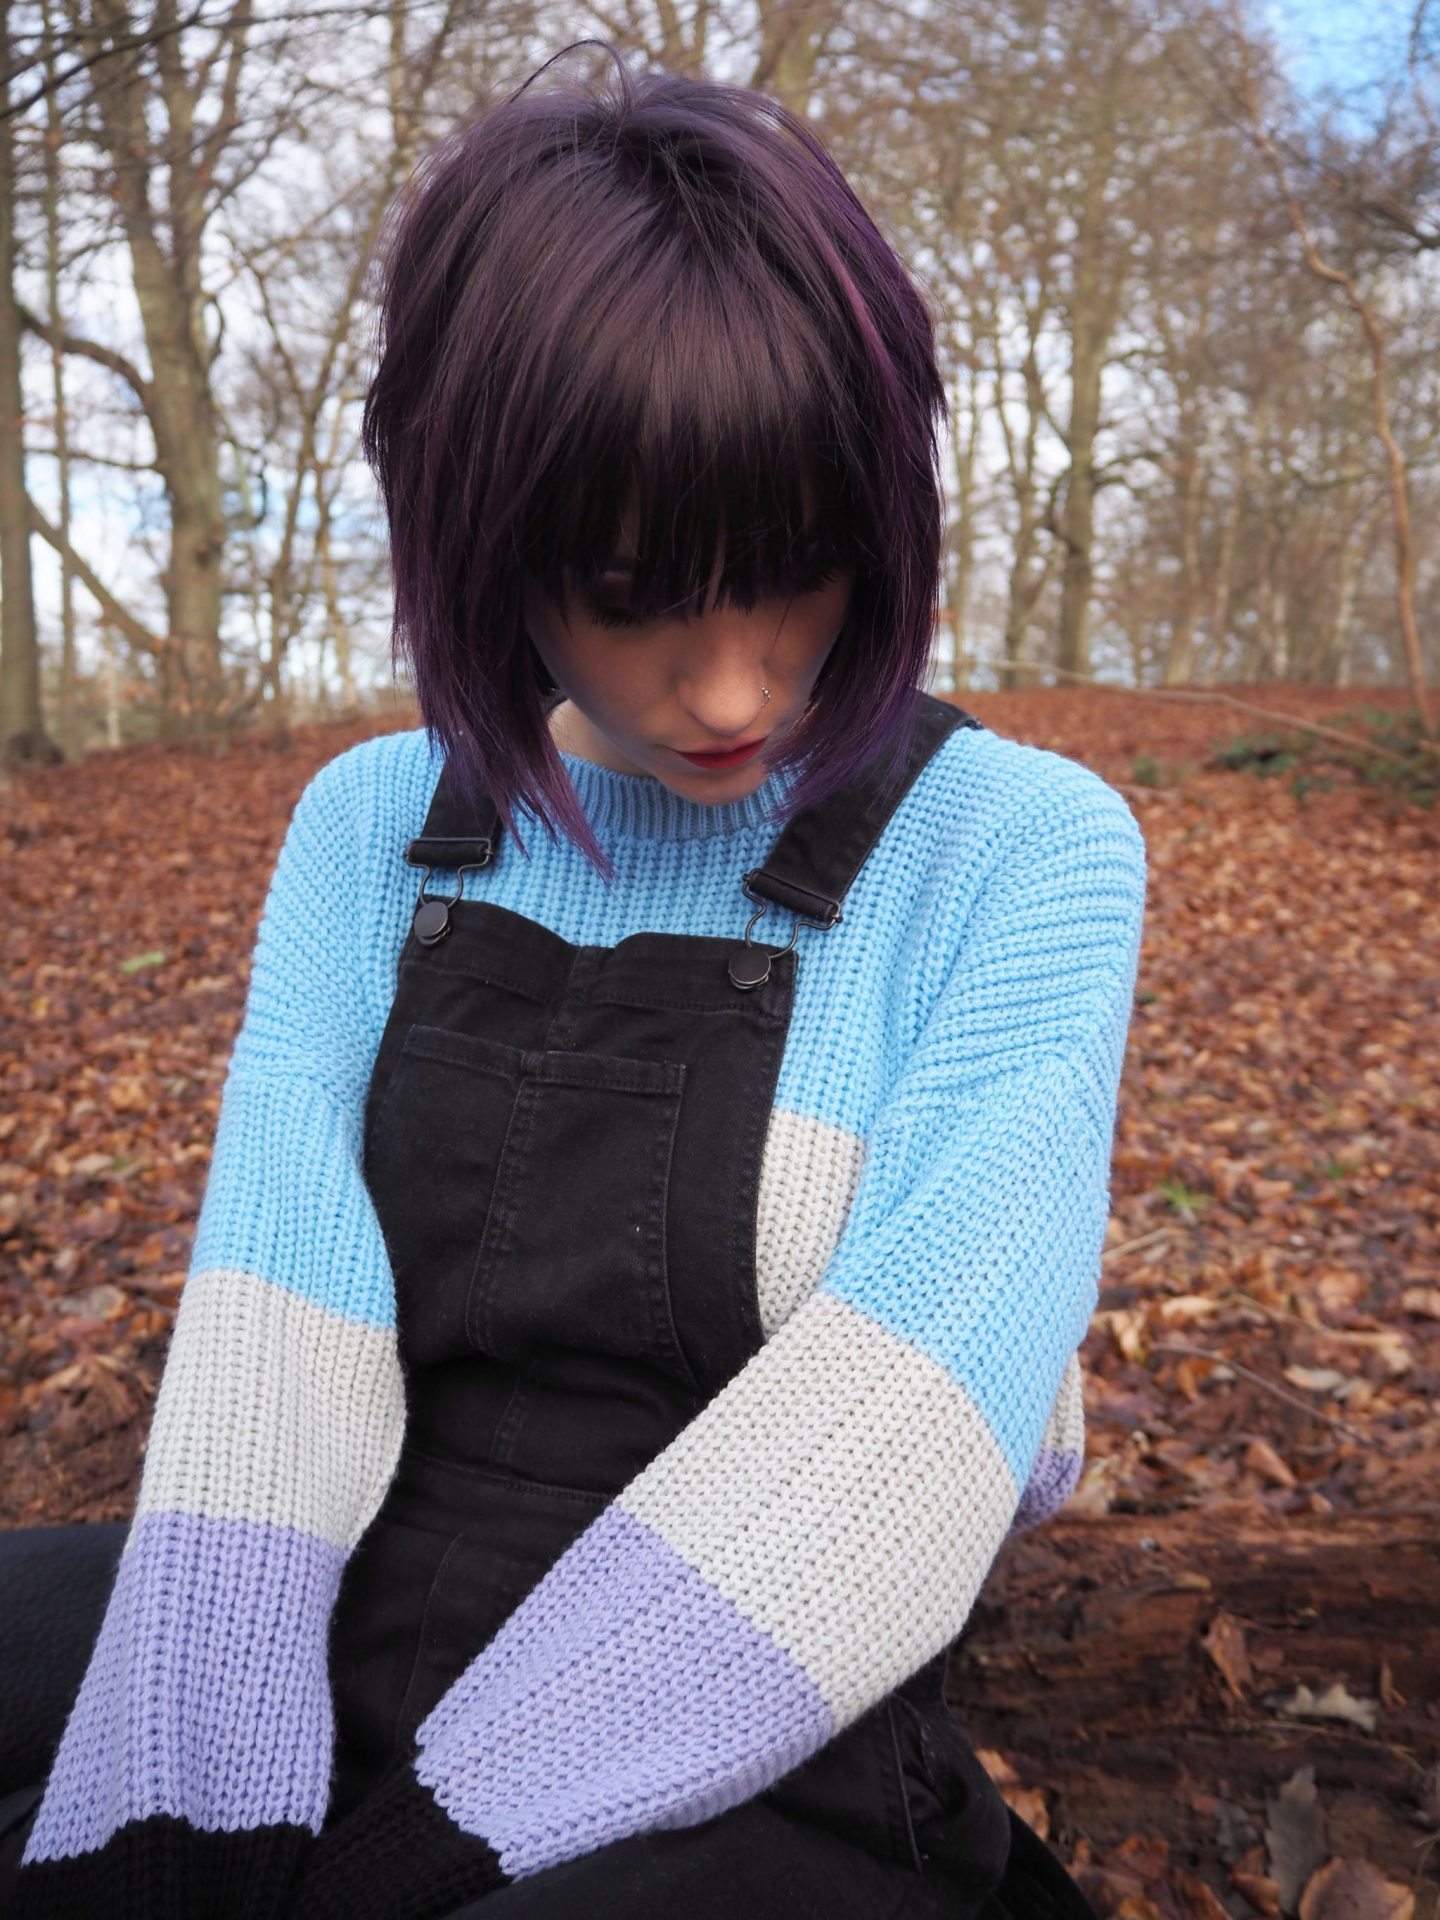 Im exhausted - closeup of jumper, hair & dungarees